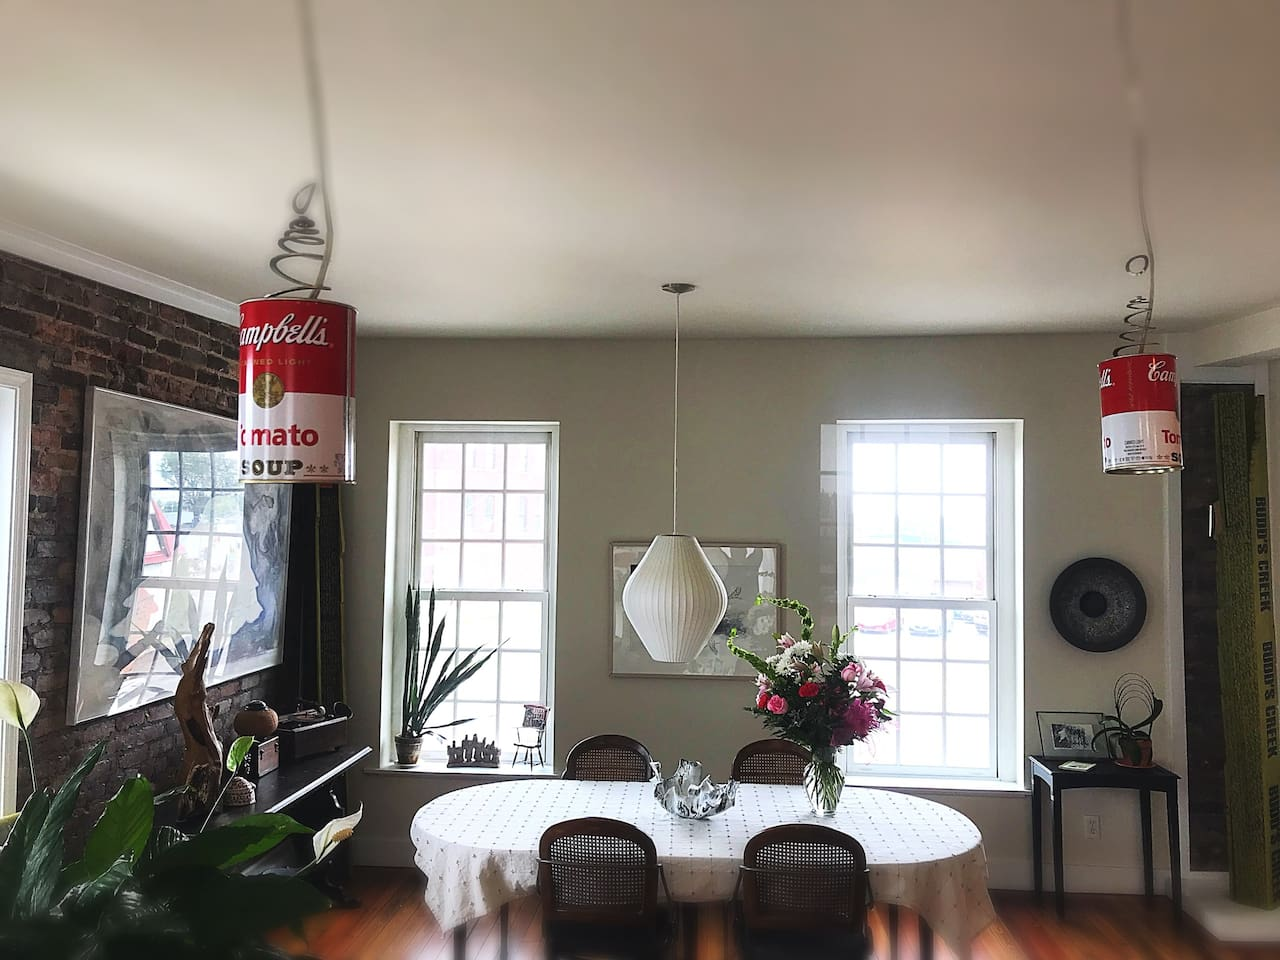 The loft is filled with original contemporary art. Andy Warhol Campbell soup cans lighting the kitchen are a playful touch.